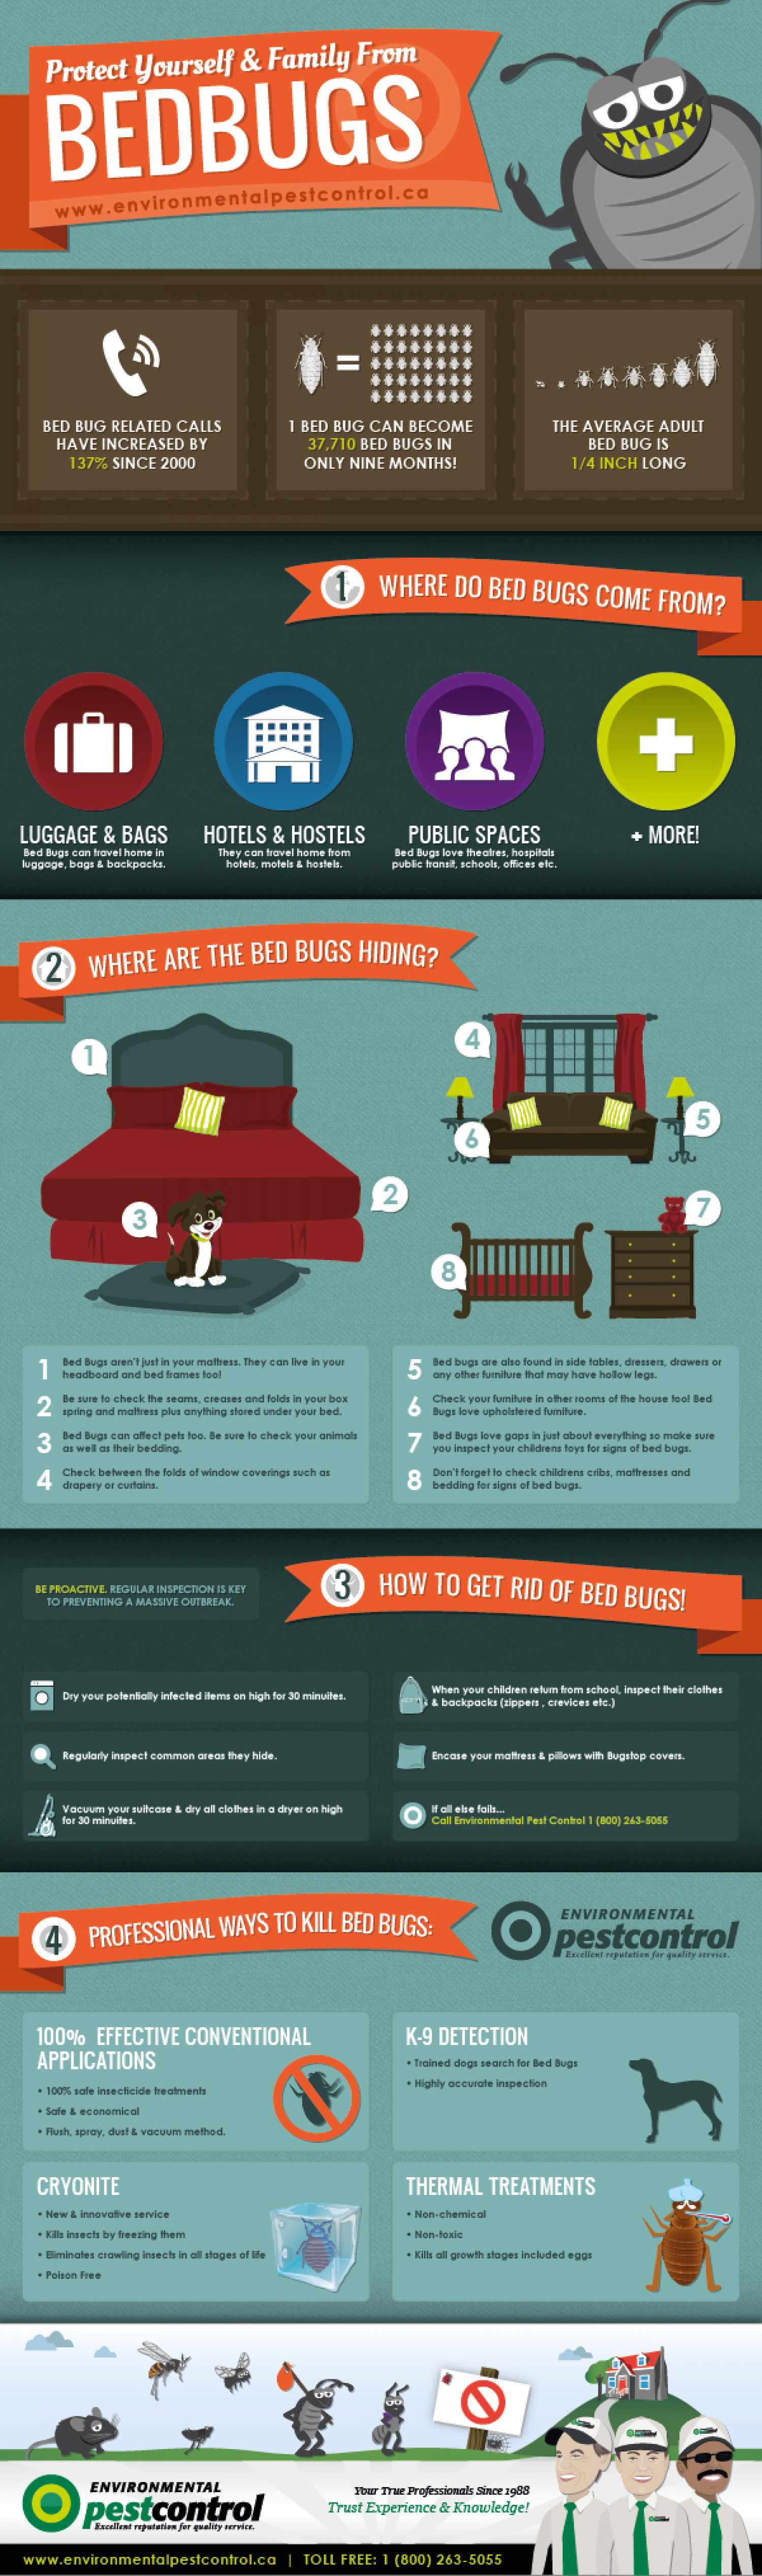 Bed Bugs - Protect Yourself and Your Family! Infographic